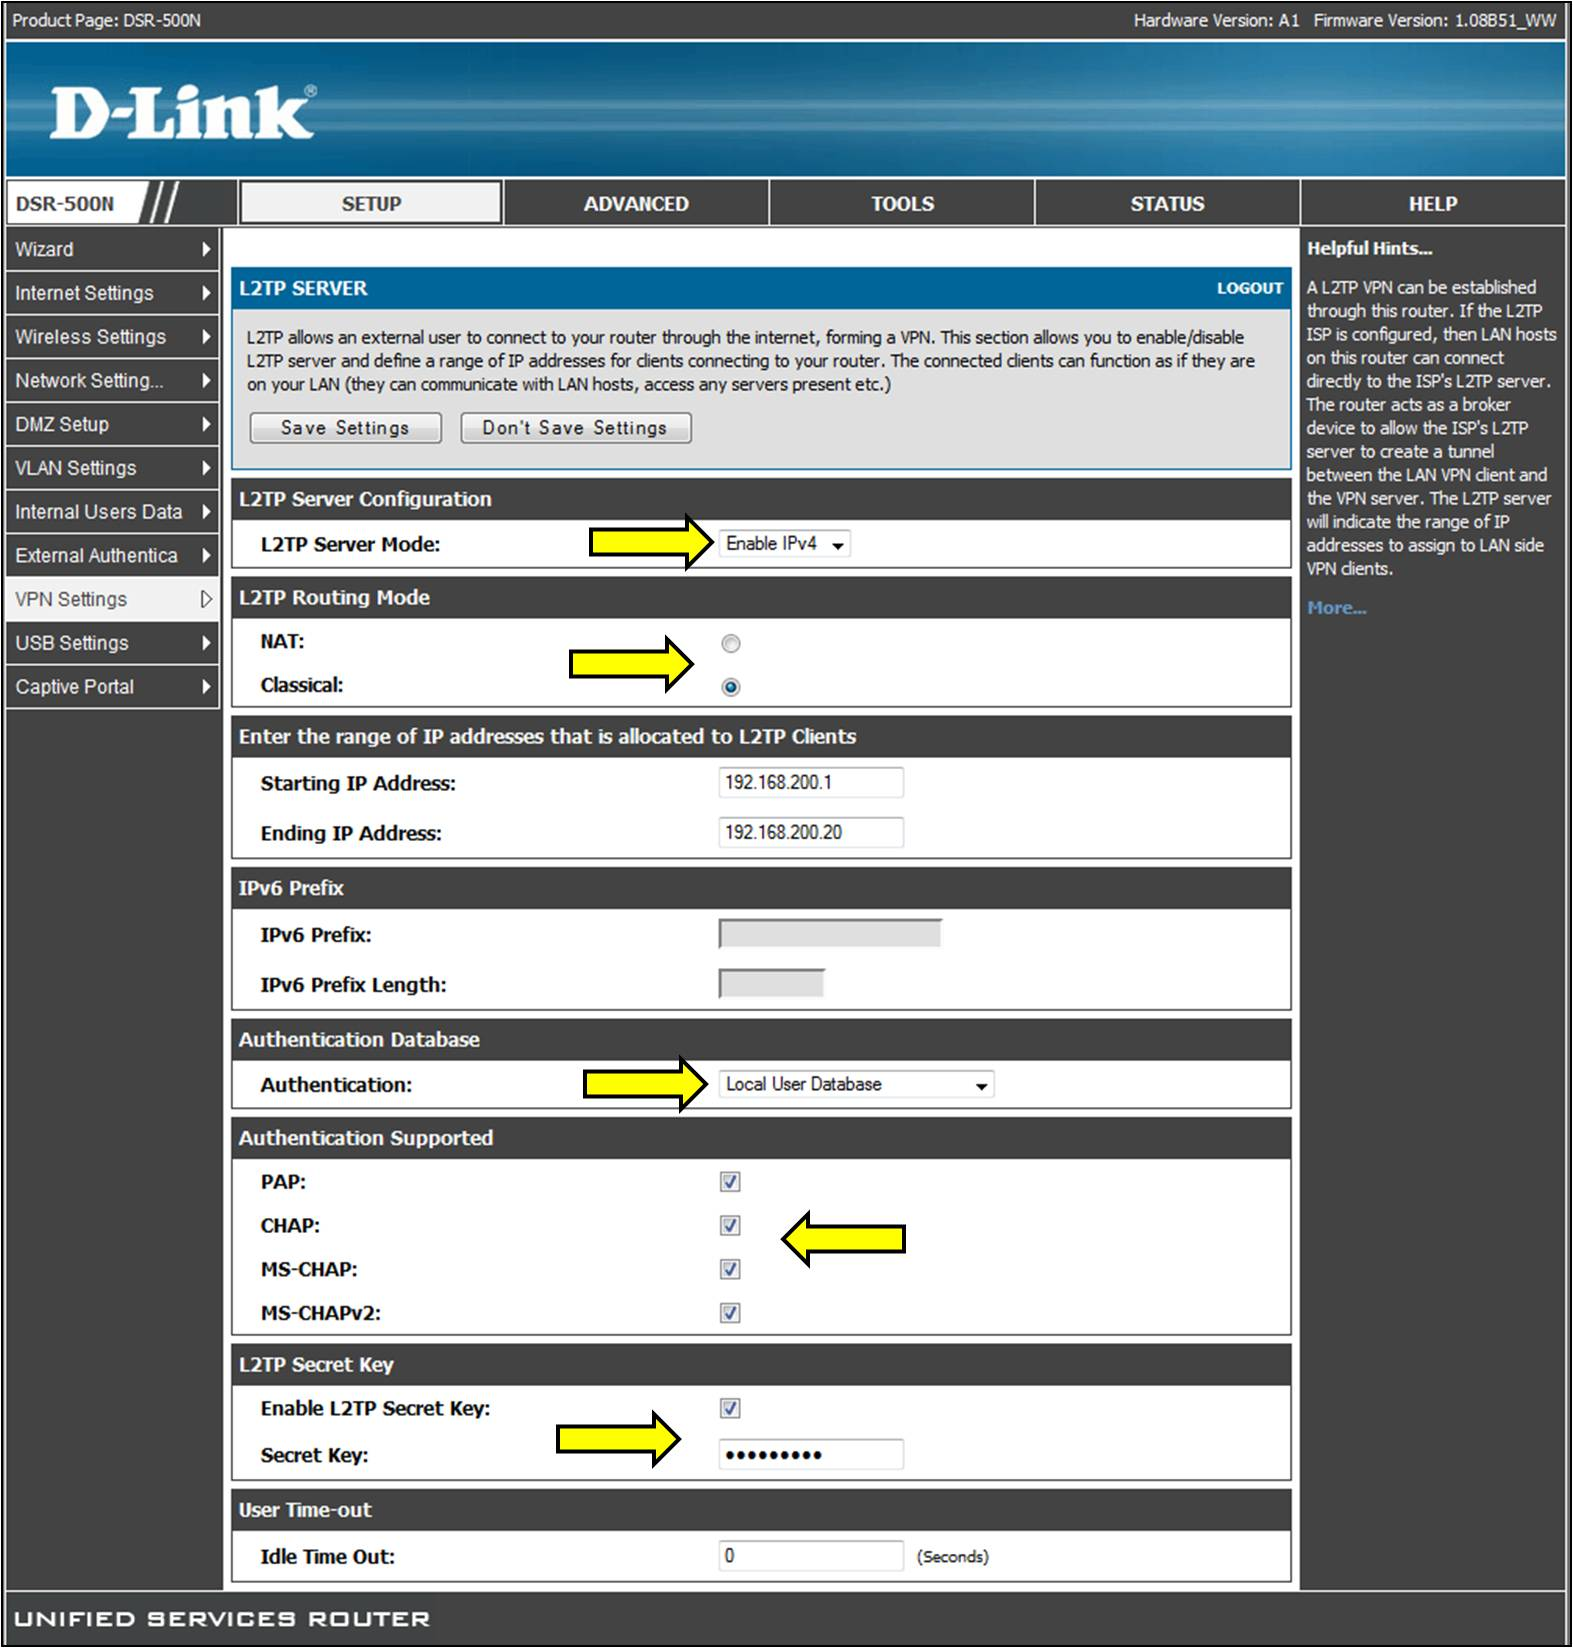 D-Link Technical Support